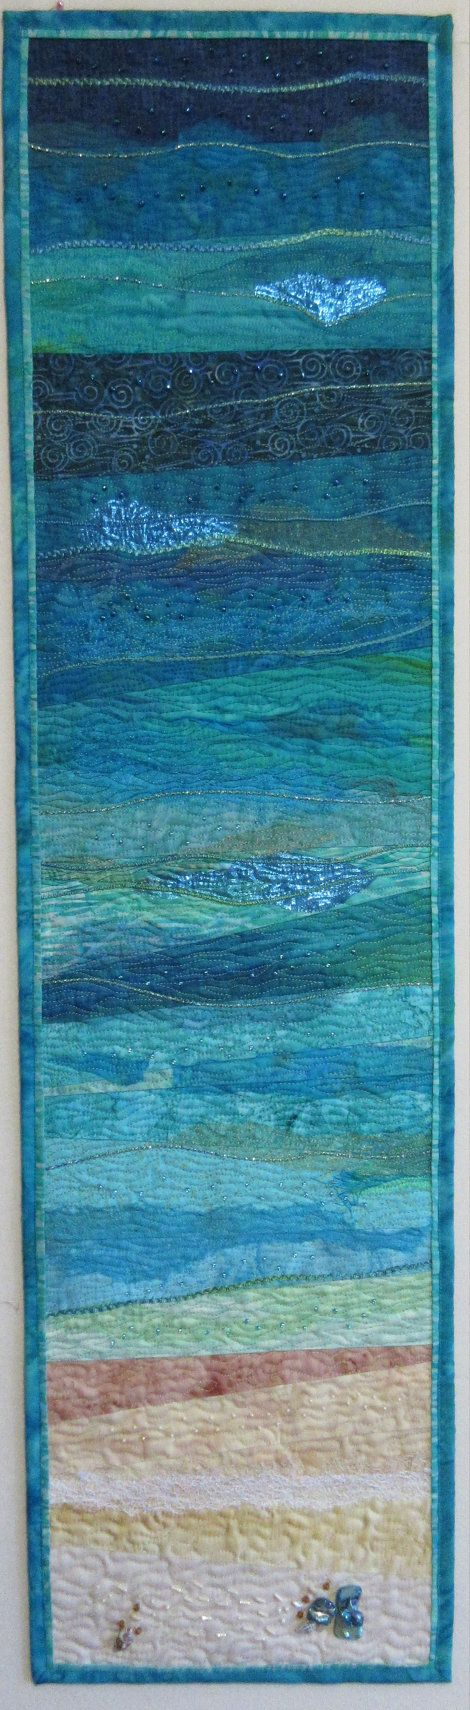 Etsy listing at https://www.etsy.com/listing/250741446/handmade-abstract-textile-art-quilt